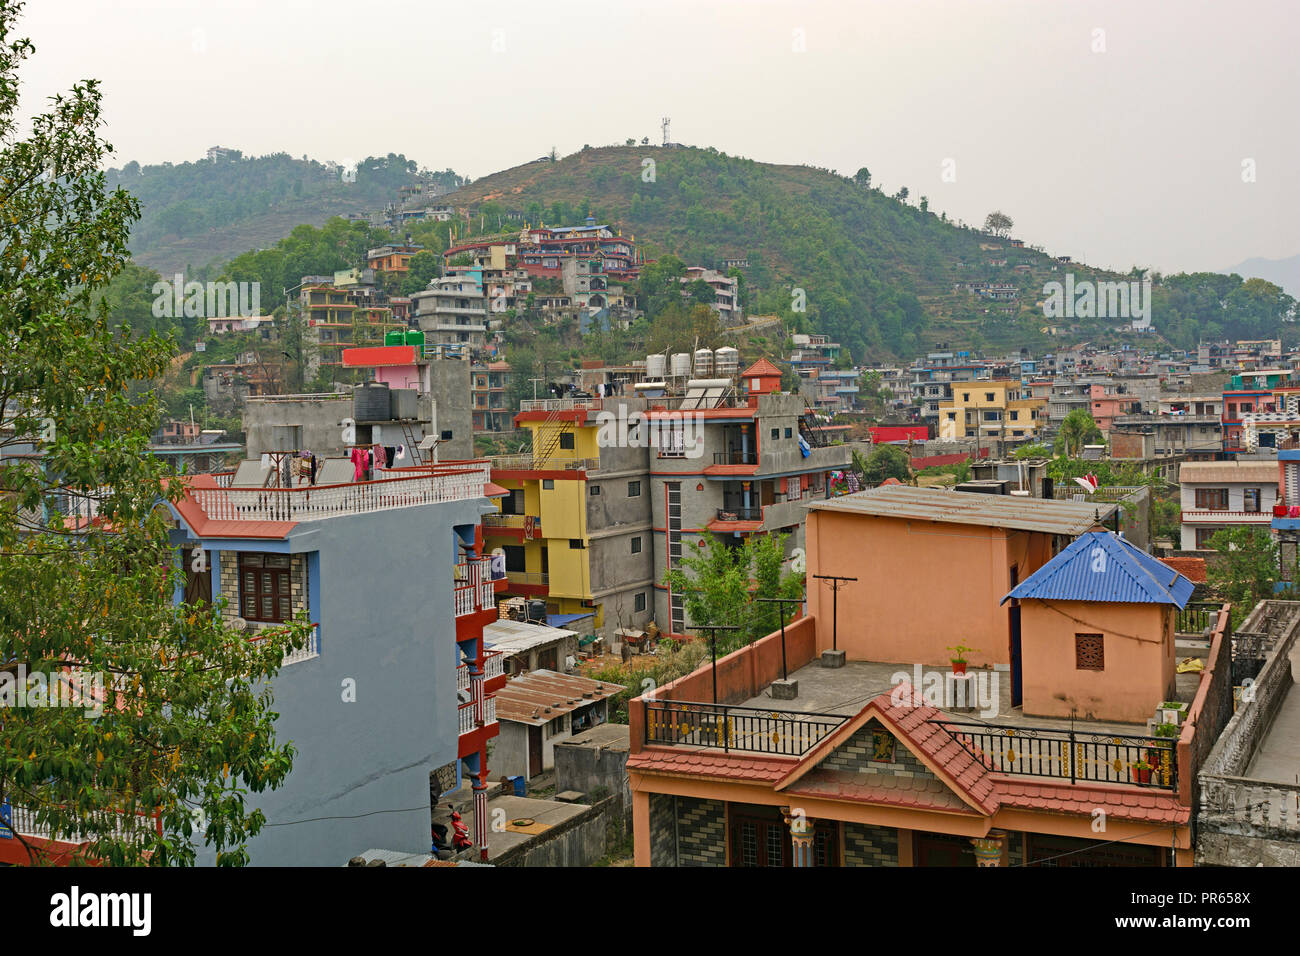 View of Pokhara, Nepal in the Foothills of the Himalayan Mountains - Stock Image